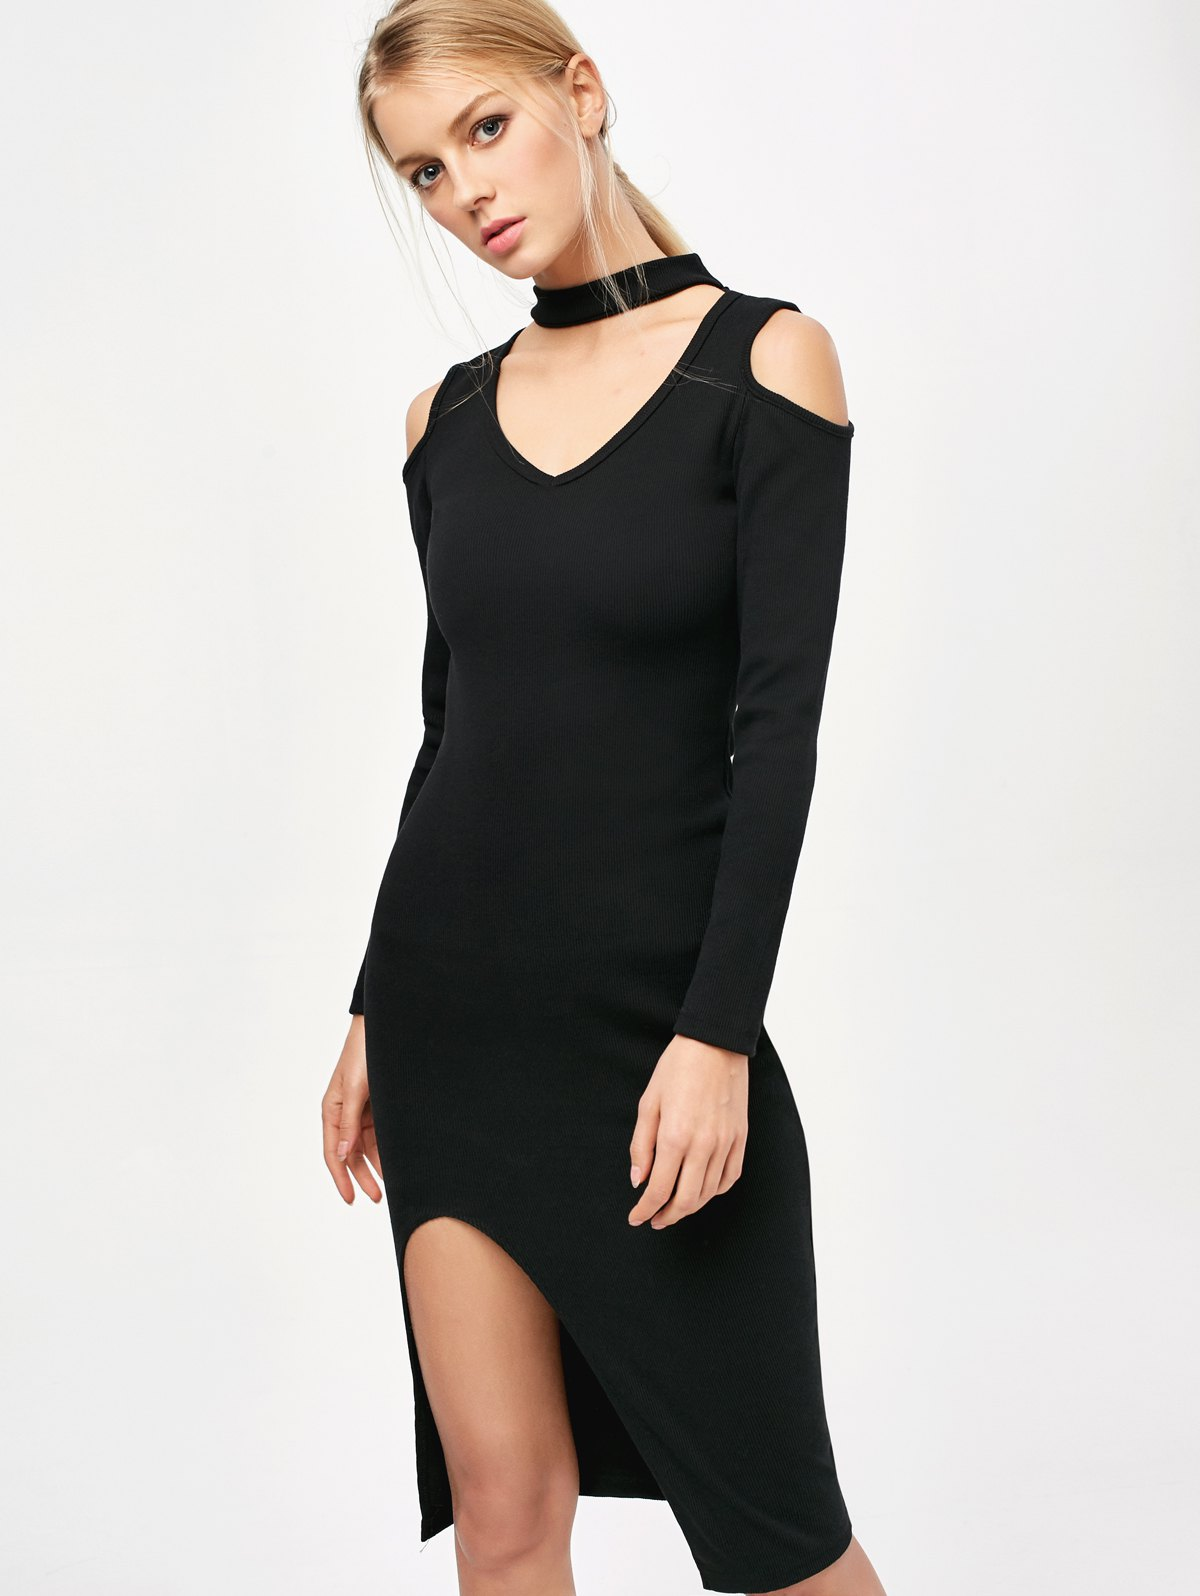 Cold Shoulder Choker Bodycon Dress - Black